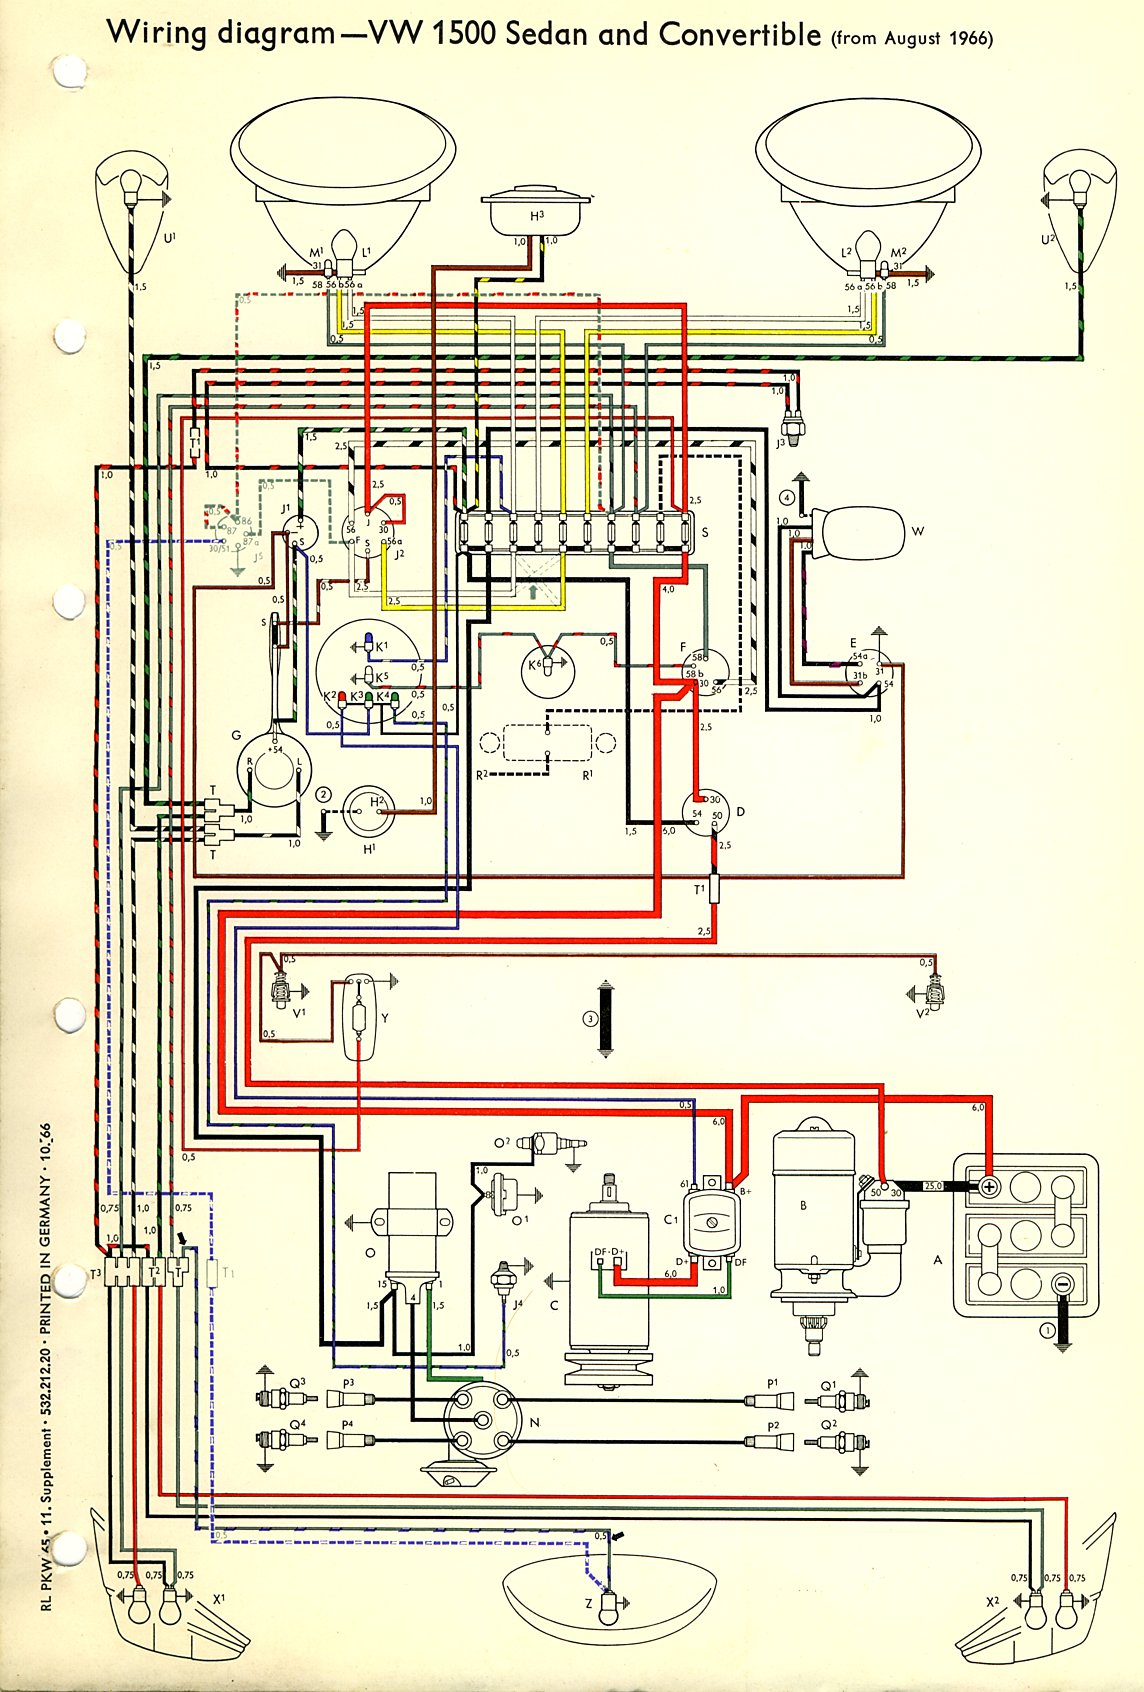 bug_67 67 vw bus wiring harness 71 vw wiring harness \u2022 wiring diagrams Wiring Harness Diagram at mifinder.co